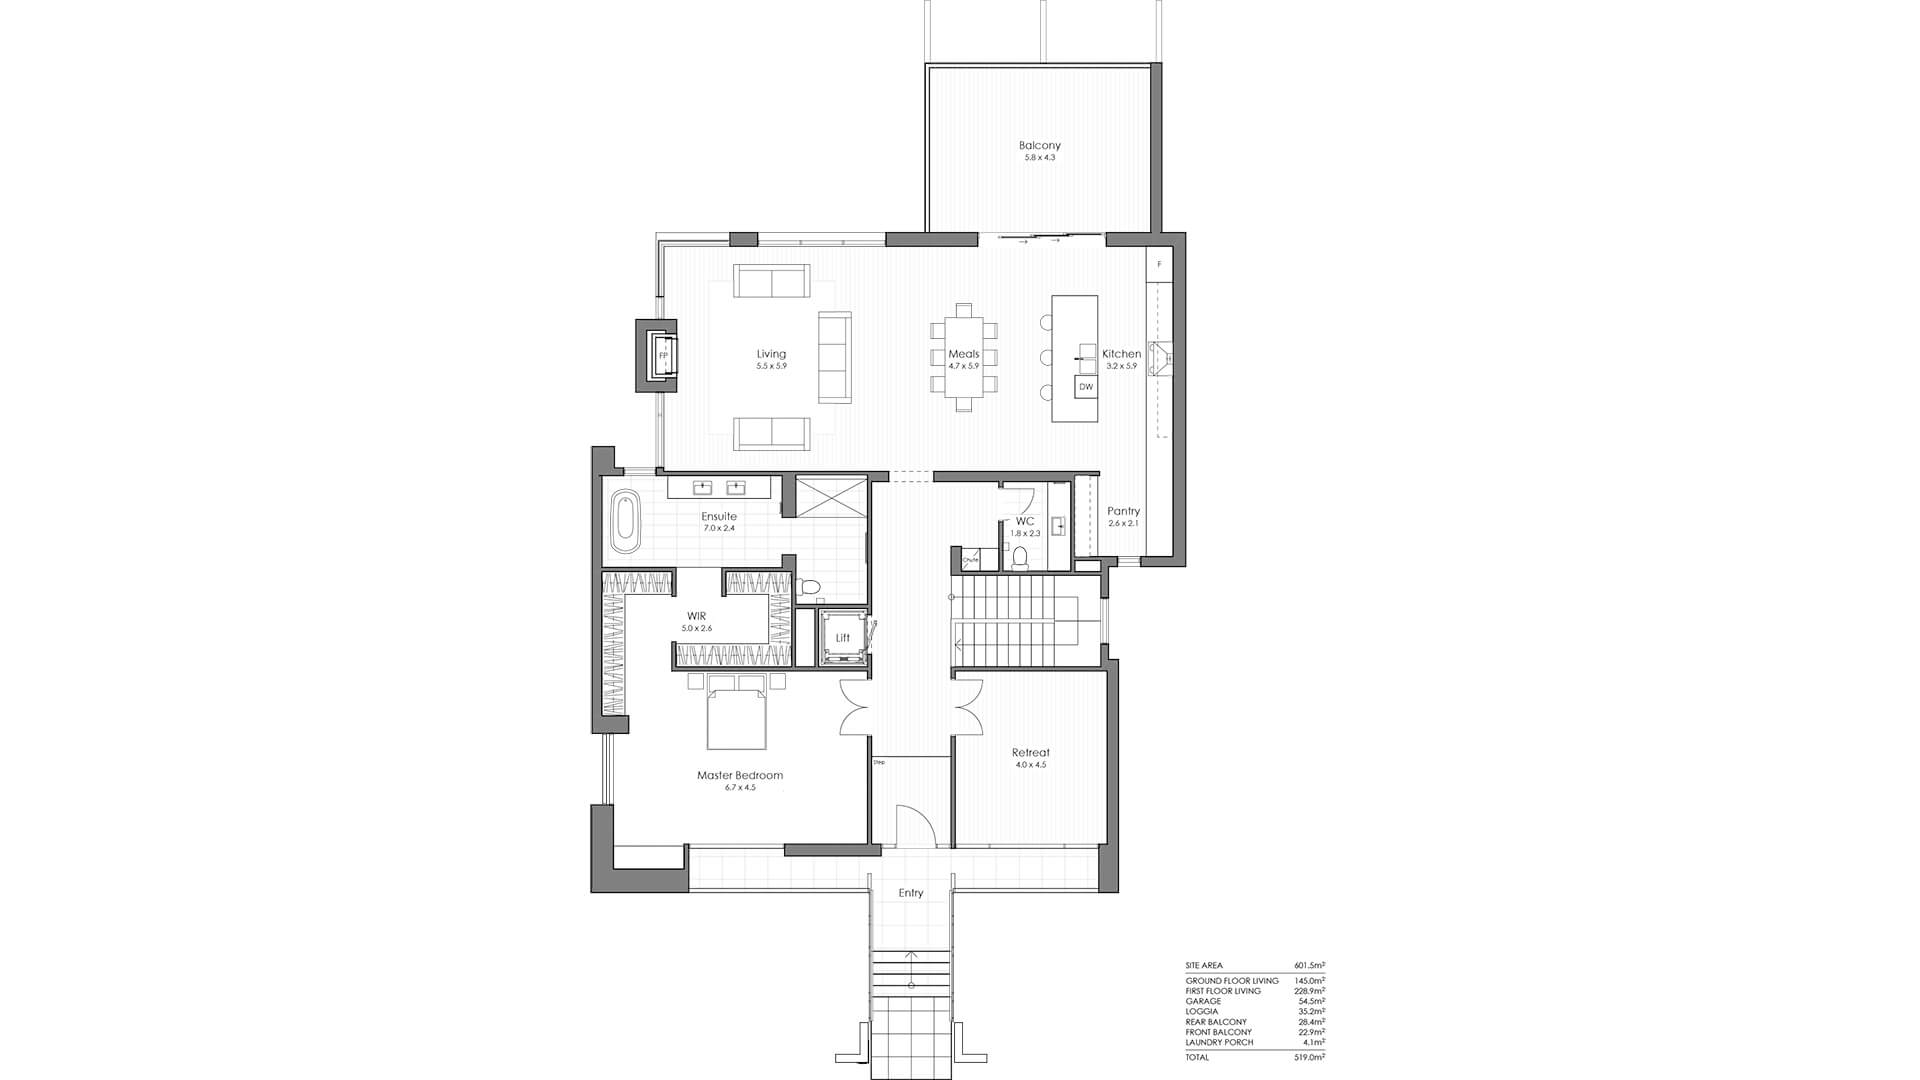 Residence 1 Marketing Plans-2